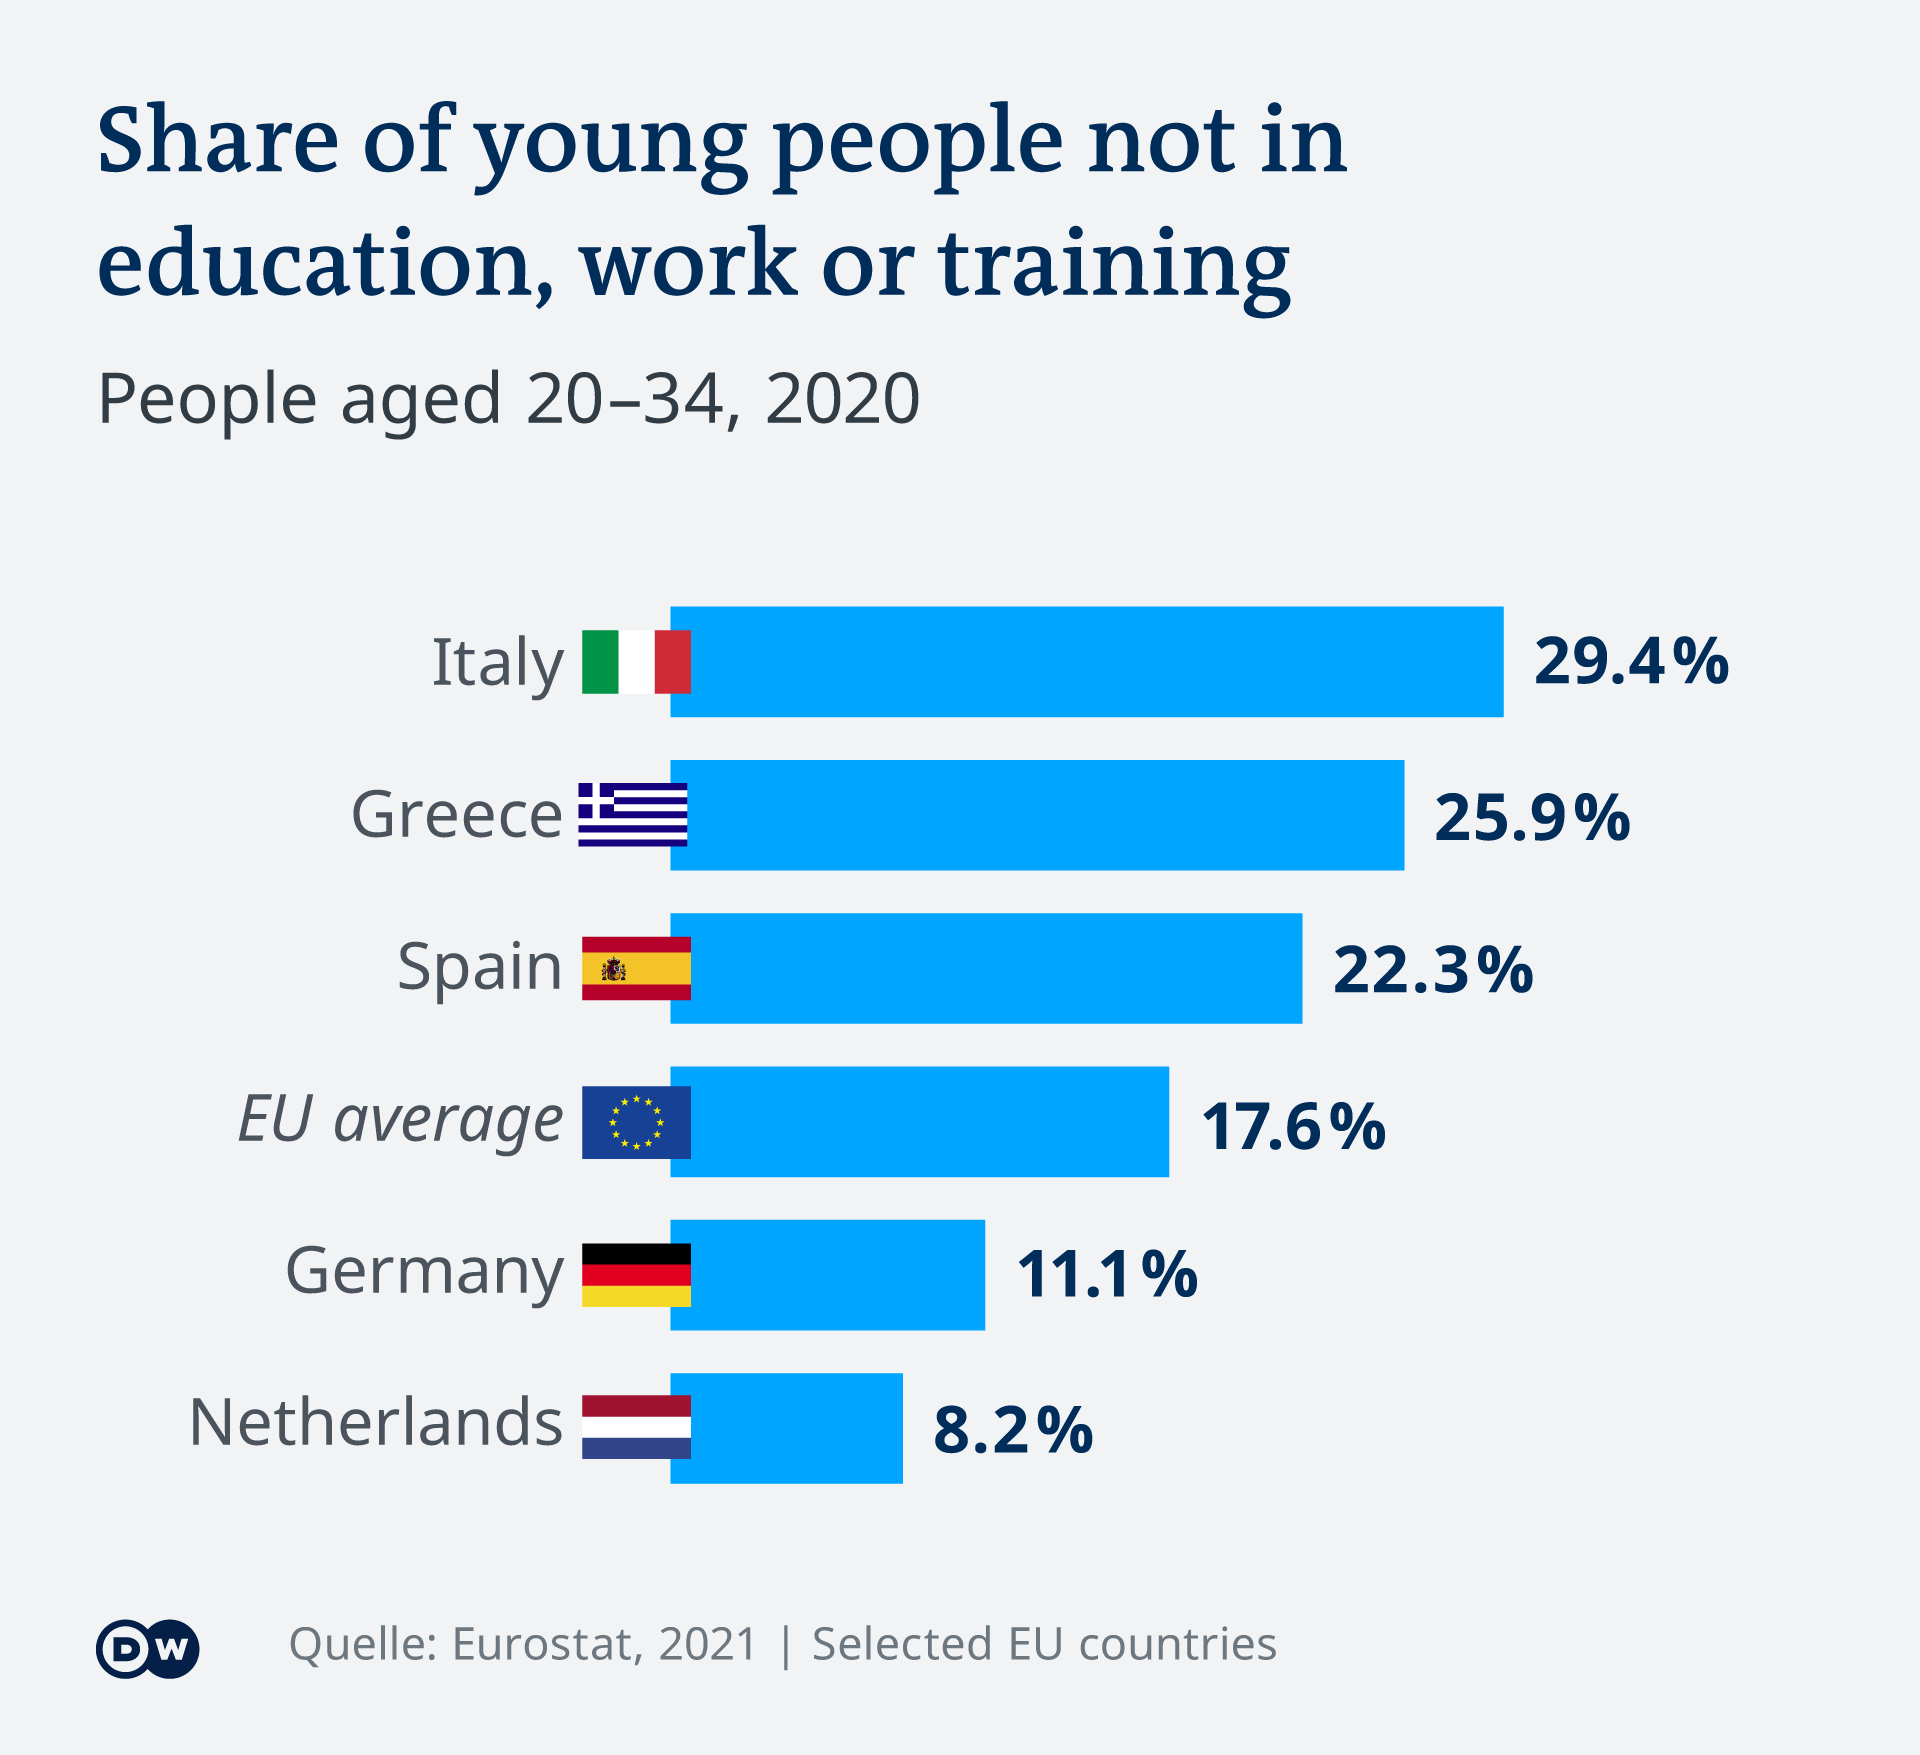 Infographic showing the share of young people without education, training or employment in selected EU countries